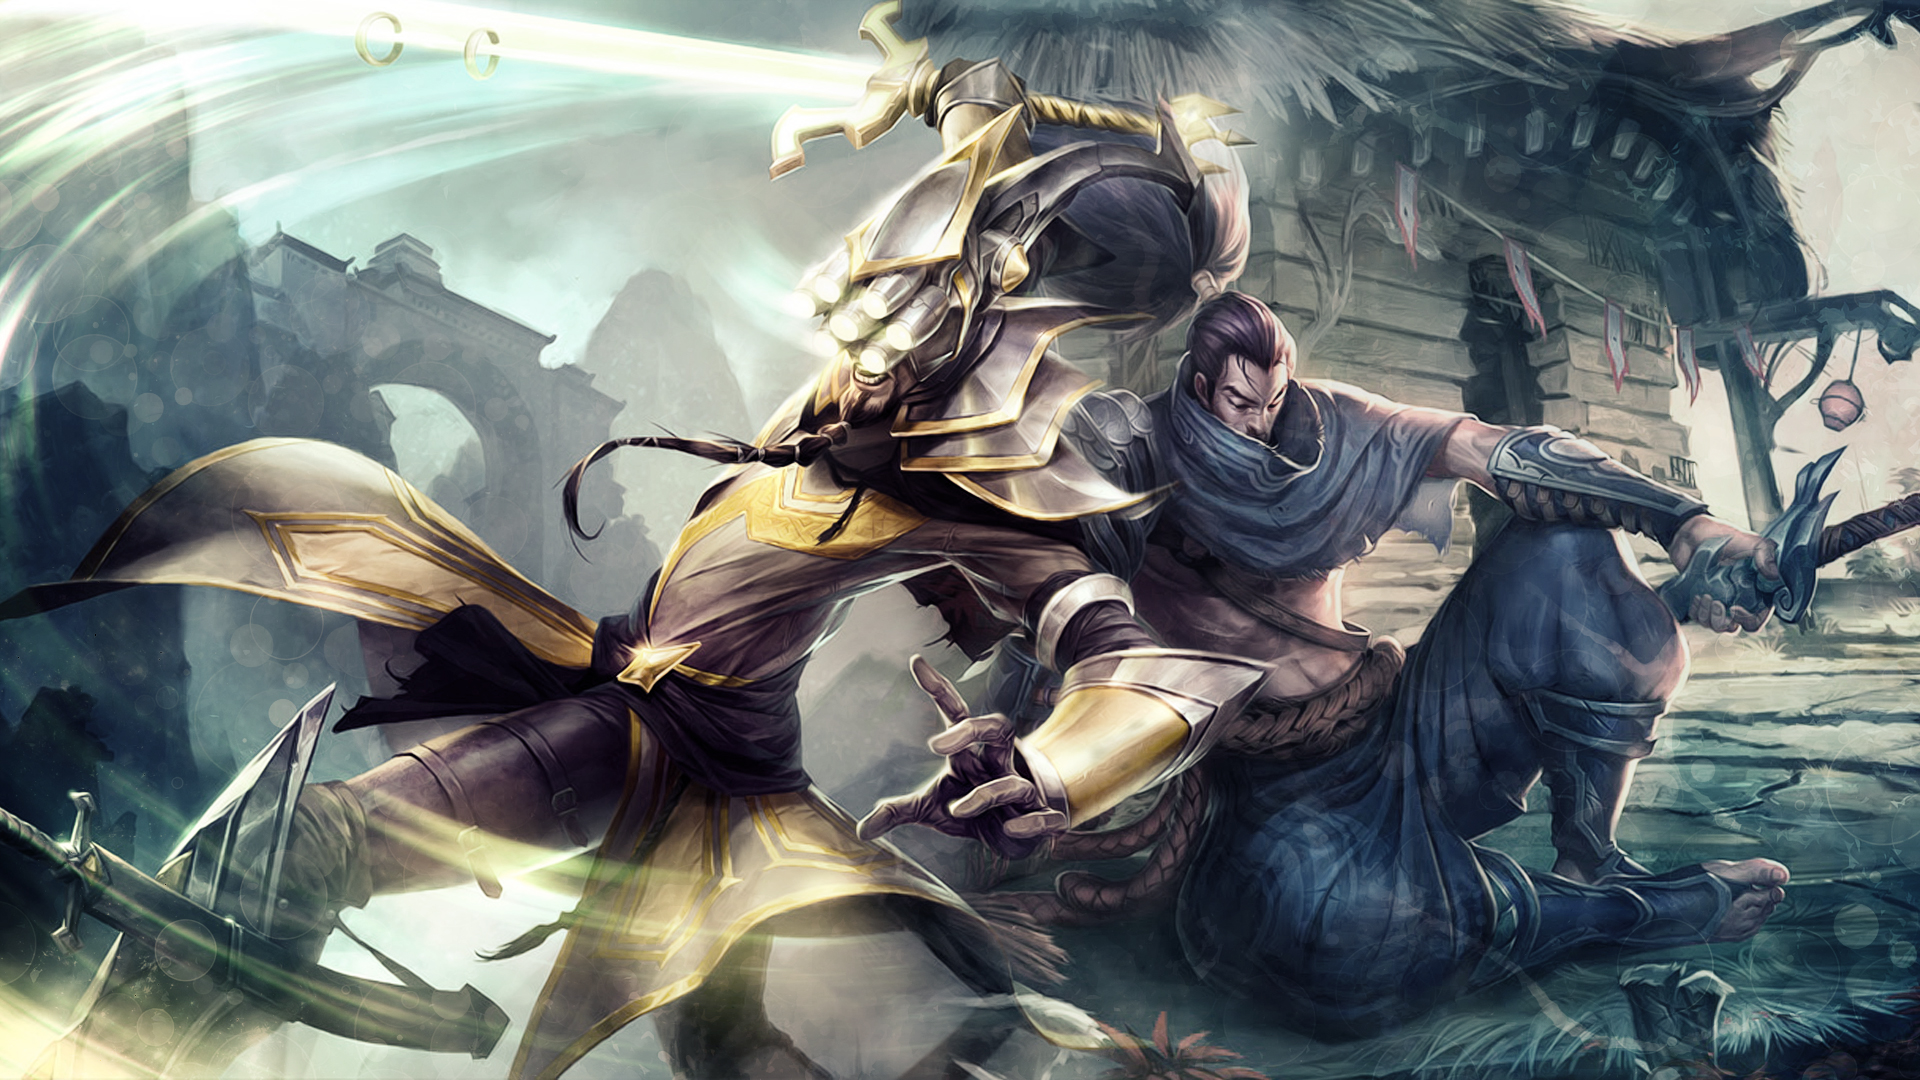 Master Yi vs Yasuo wallpaper